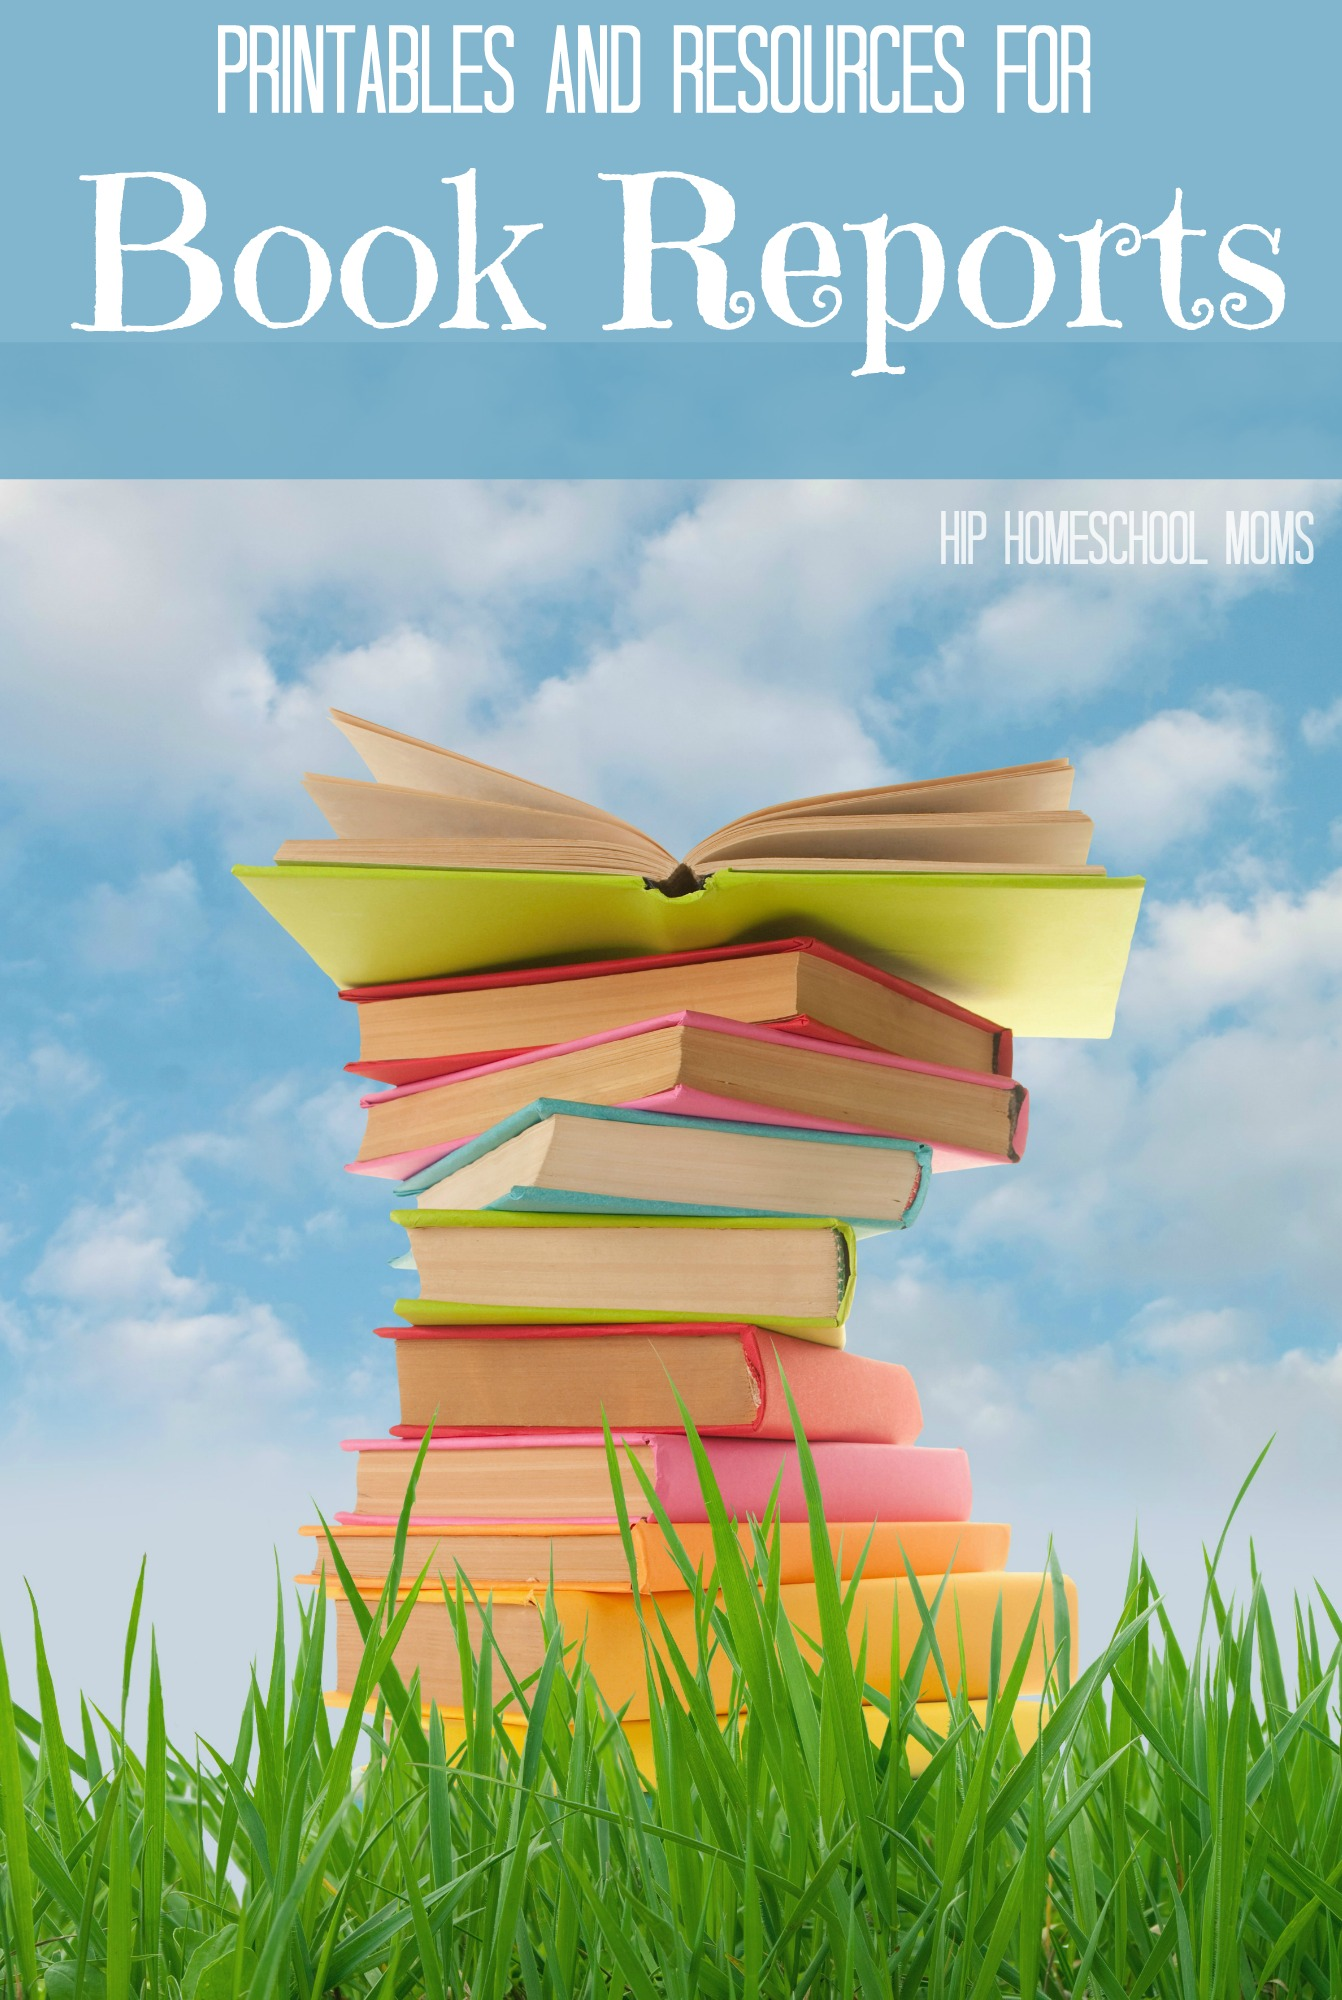 hight resolution of Printables and Resources for Book Reports   Hip Homeschool Moms